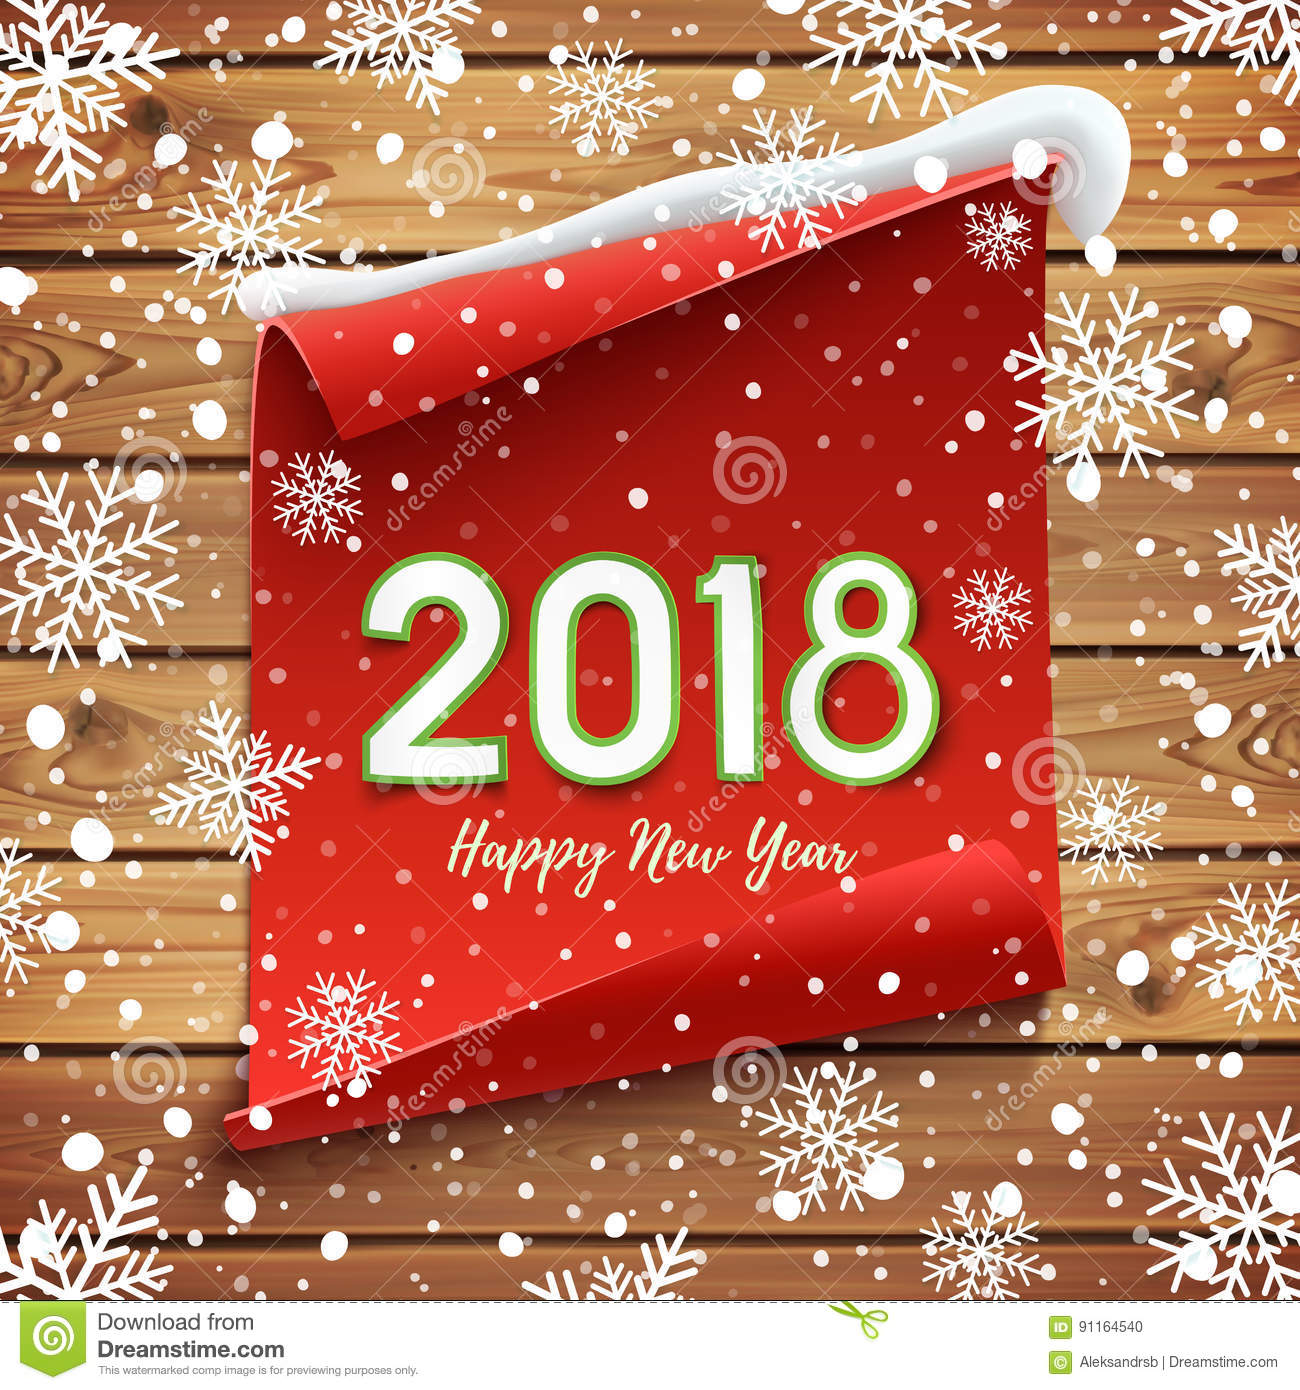 New Year Greeting Cards 2018 Vatozozdevelopment